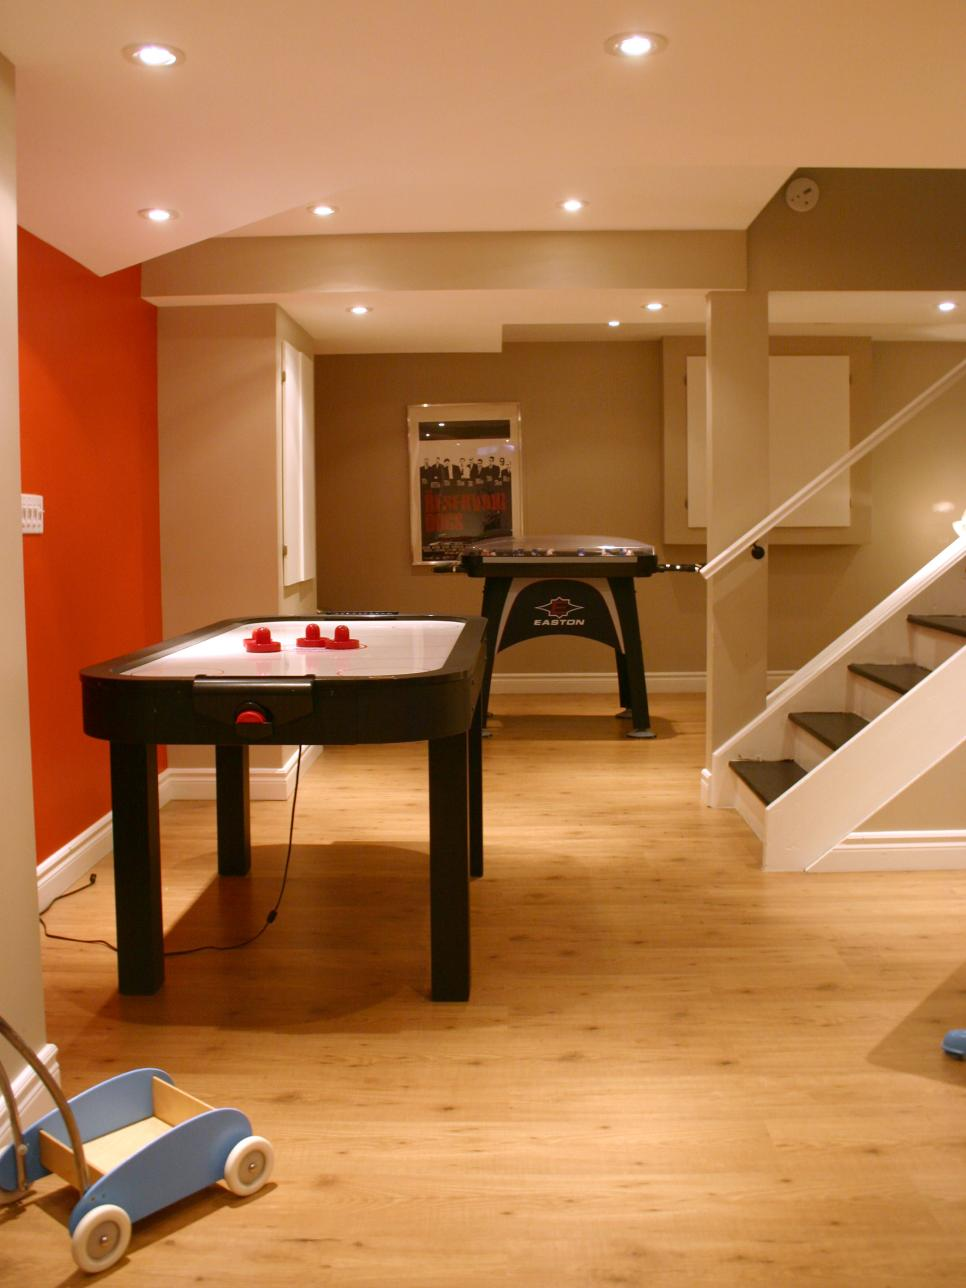 Basement design ideas hgtv Basement architect